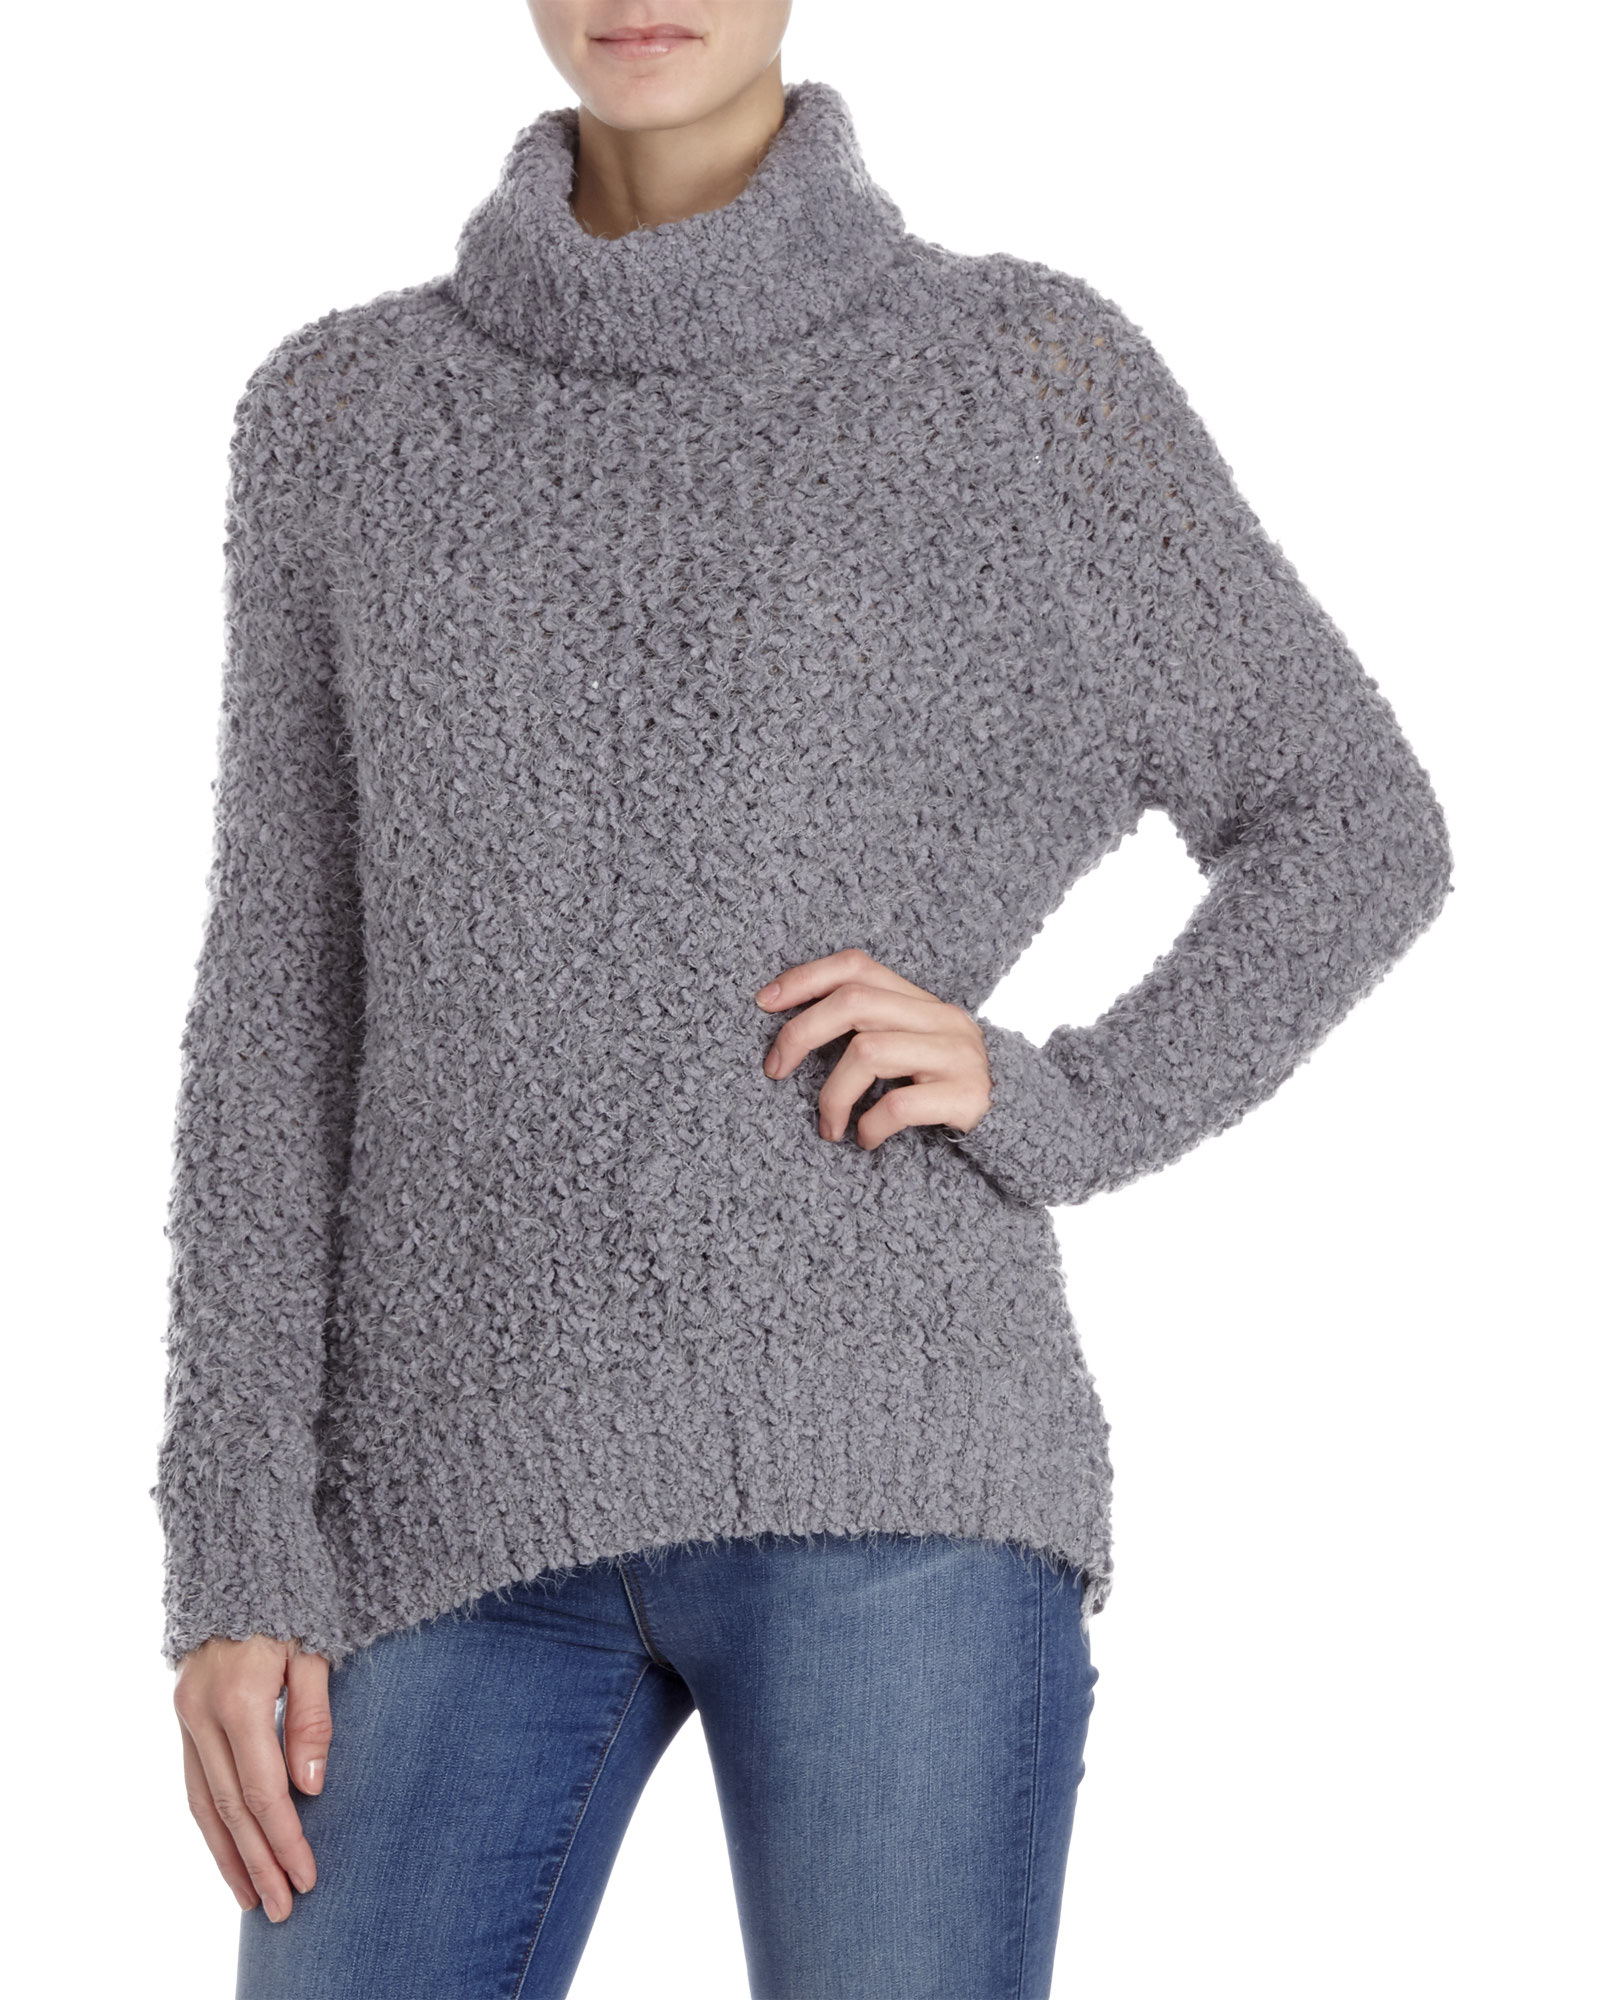 Pol Grey Turtleneck Chunky Knit Sweater in Gray | Lyst